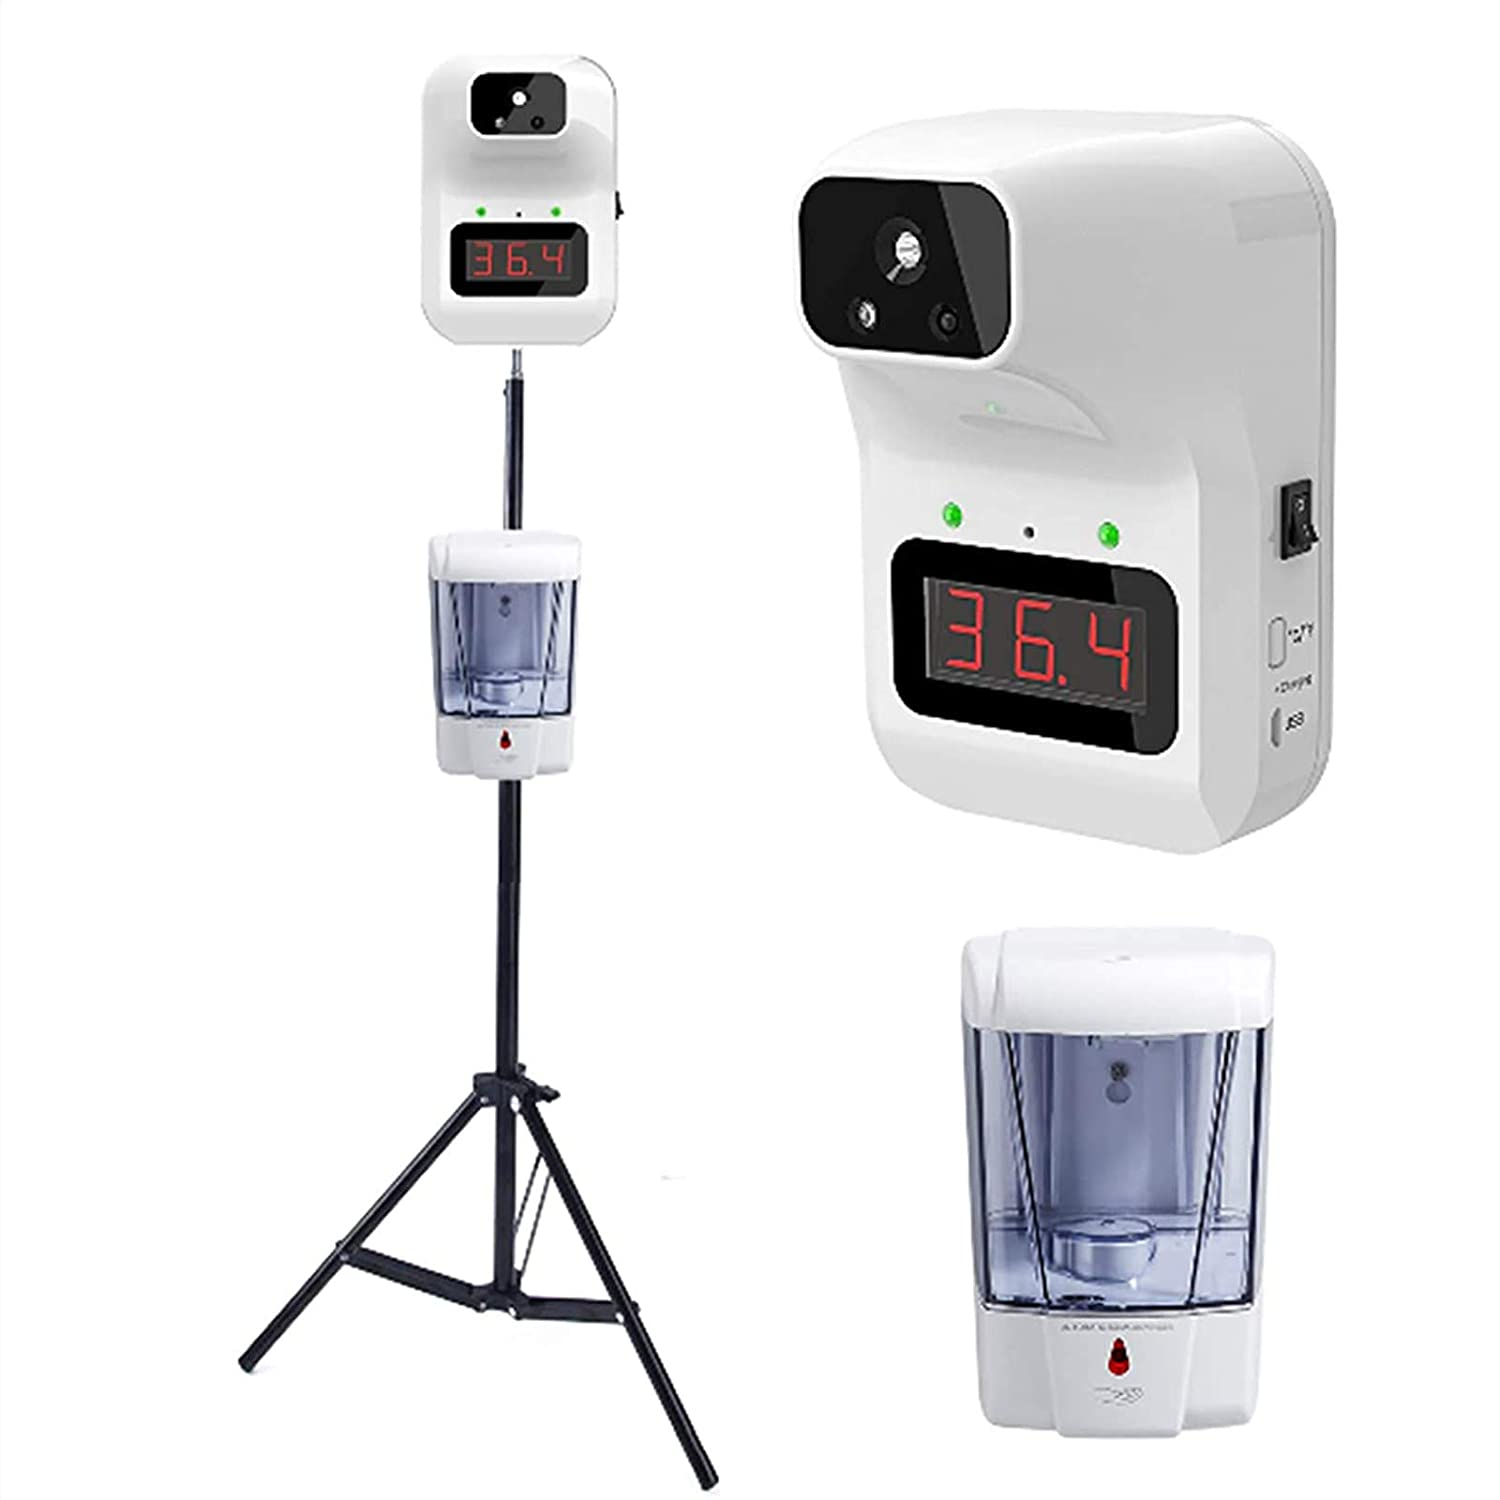 HVW 出色 Temperature Scanner 保証 with Stand Wall Infrared Non-Contact Th